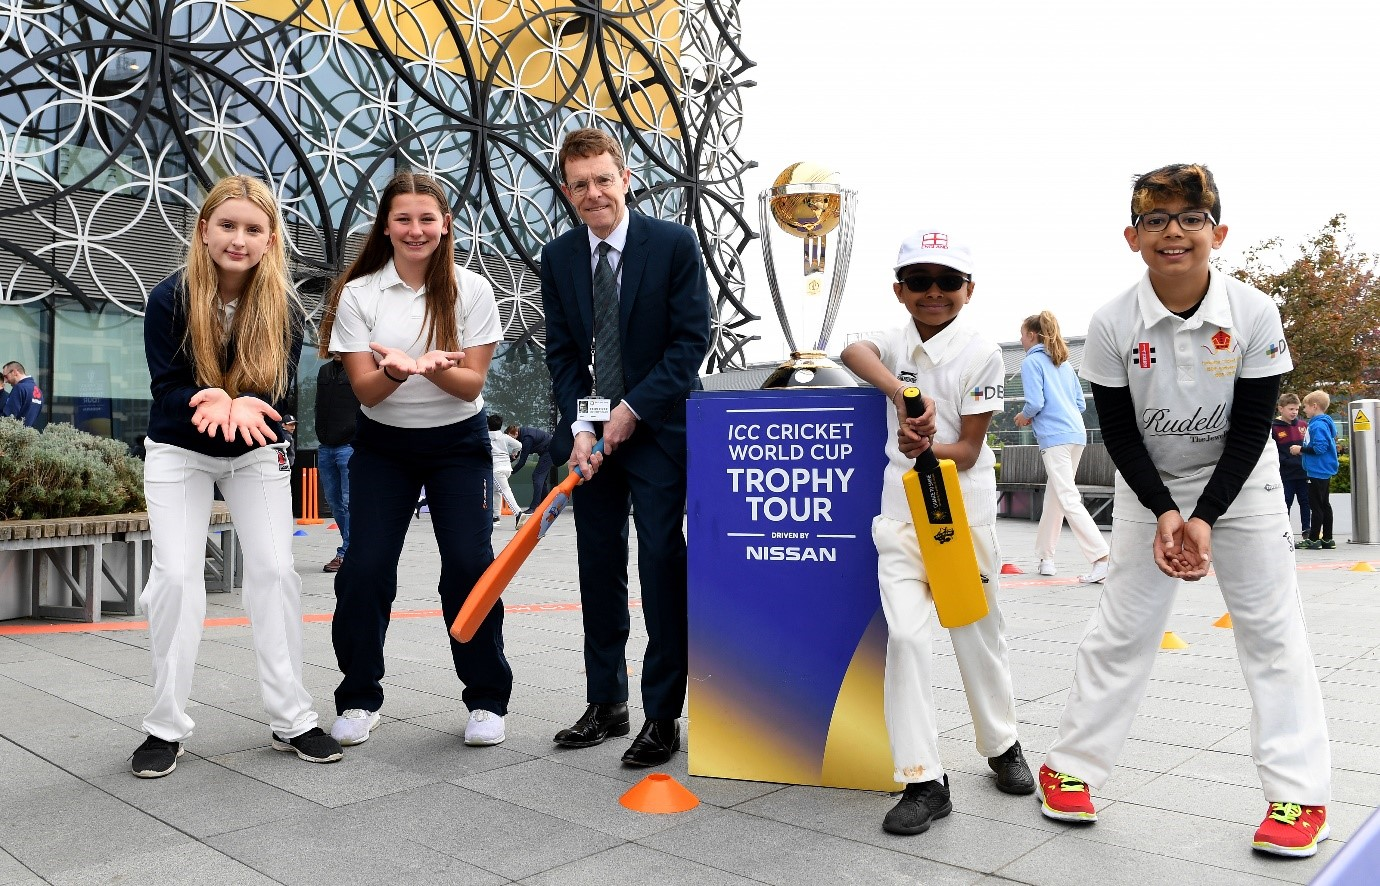 Mayor to host intergenerational Cricket Cup at Edgbaston